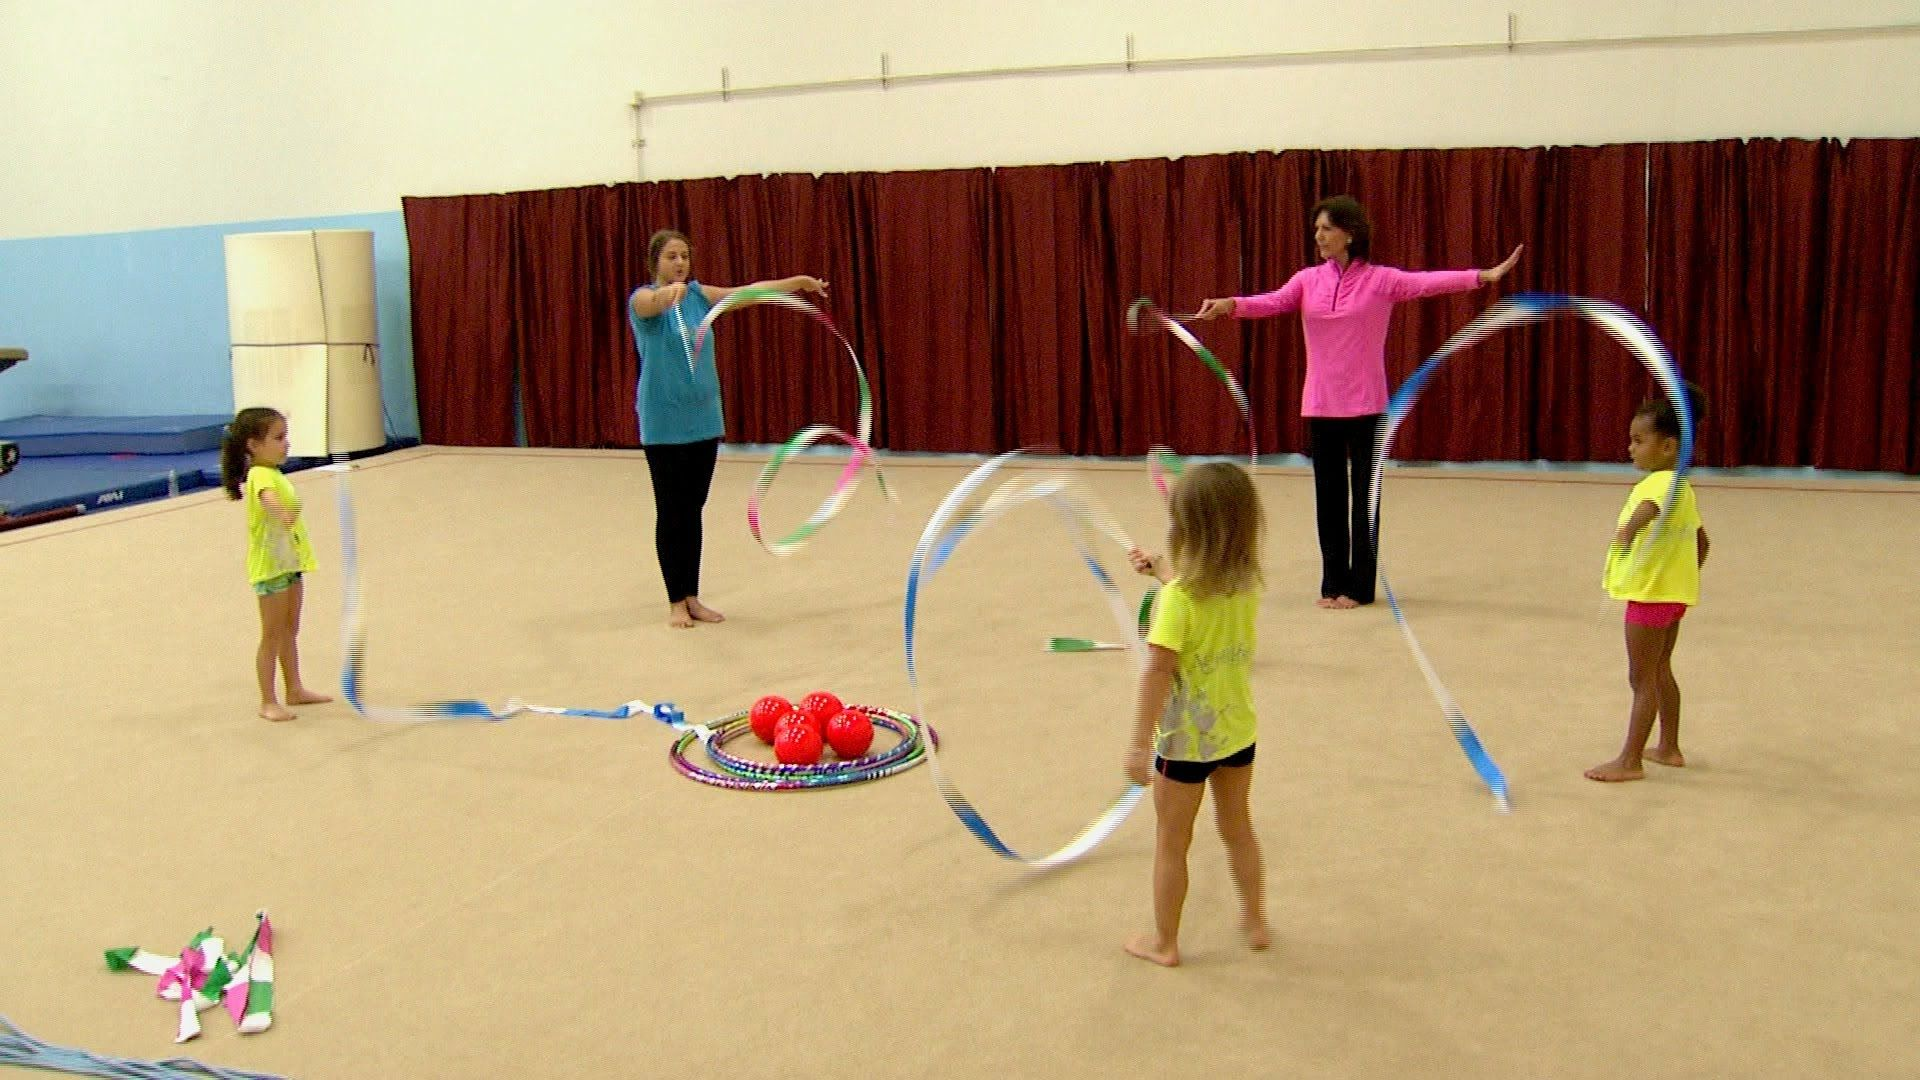 KidVision VPK Gymnastics Field Trip (With images